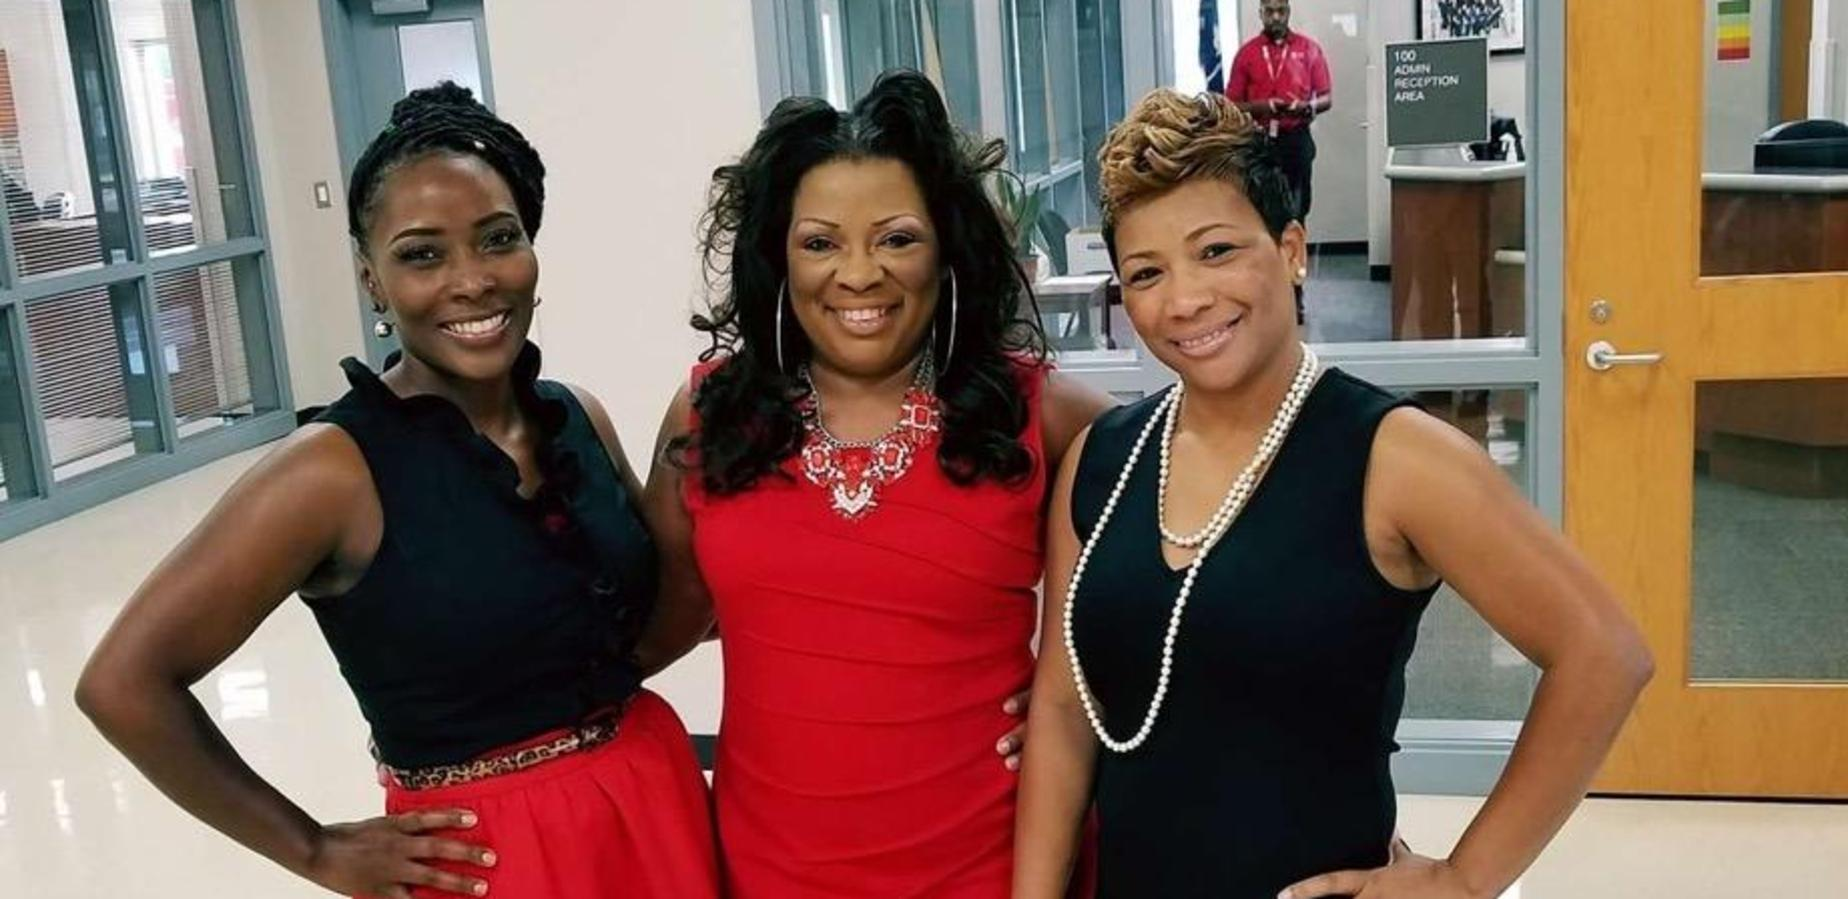 3 ladies wearing red and black to support education.